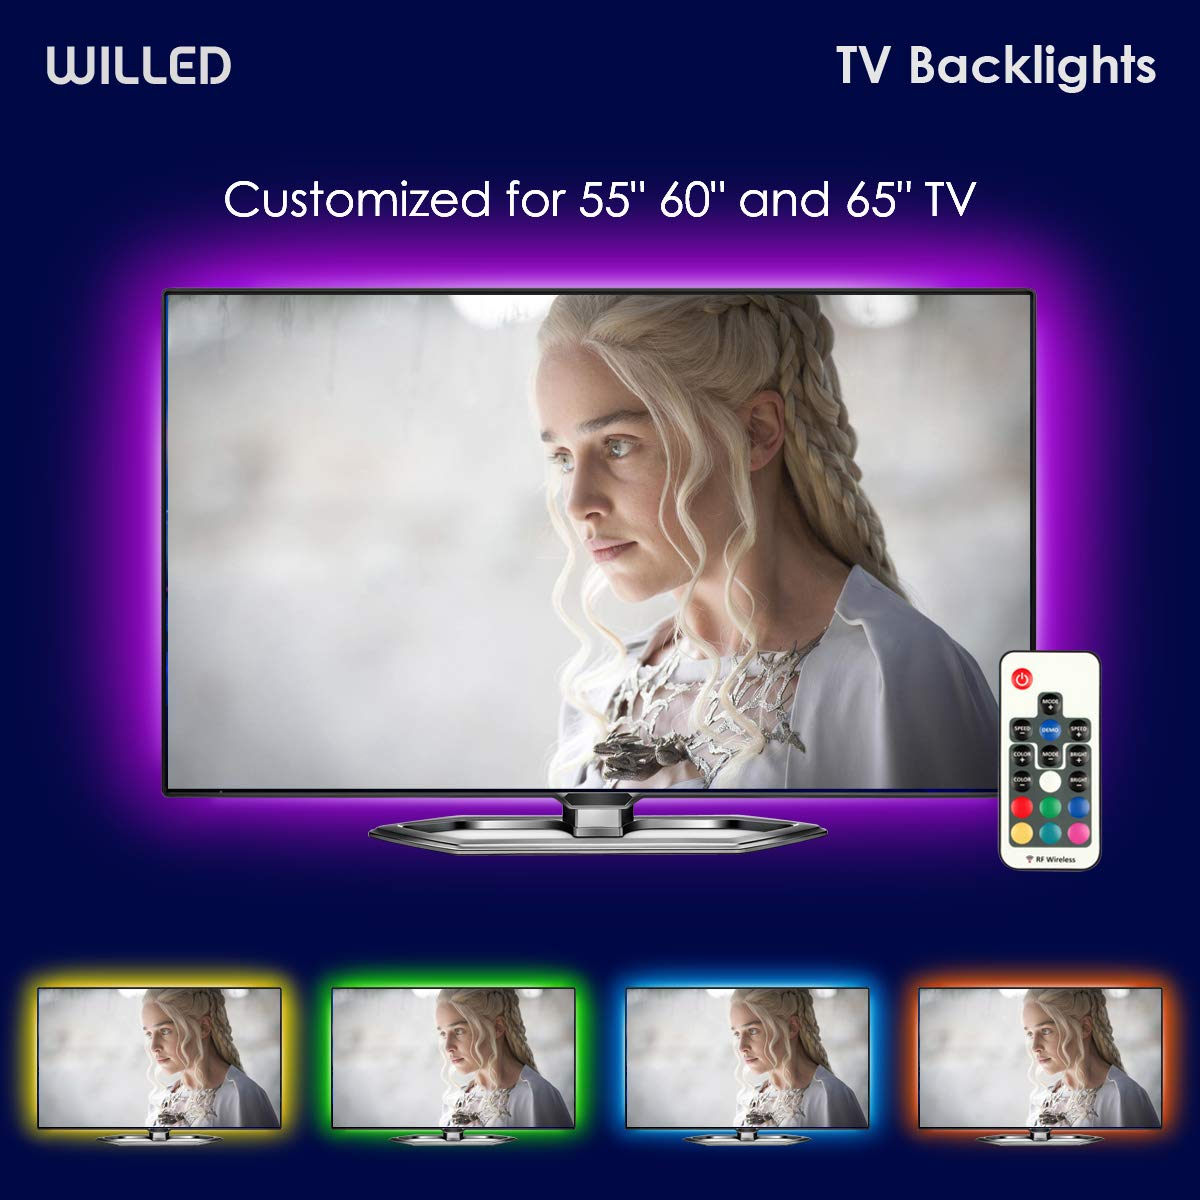 TV LED Backlight, WILLED USB LED Strip Lights kit Customized for TV 55 60 65 inch Monitor Bias Lighting RGB Light Strip 12.6ft with RF Remote